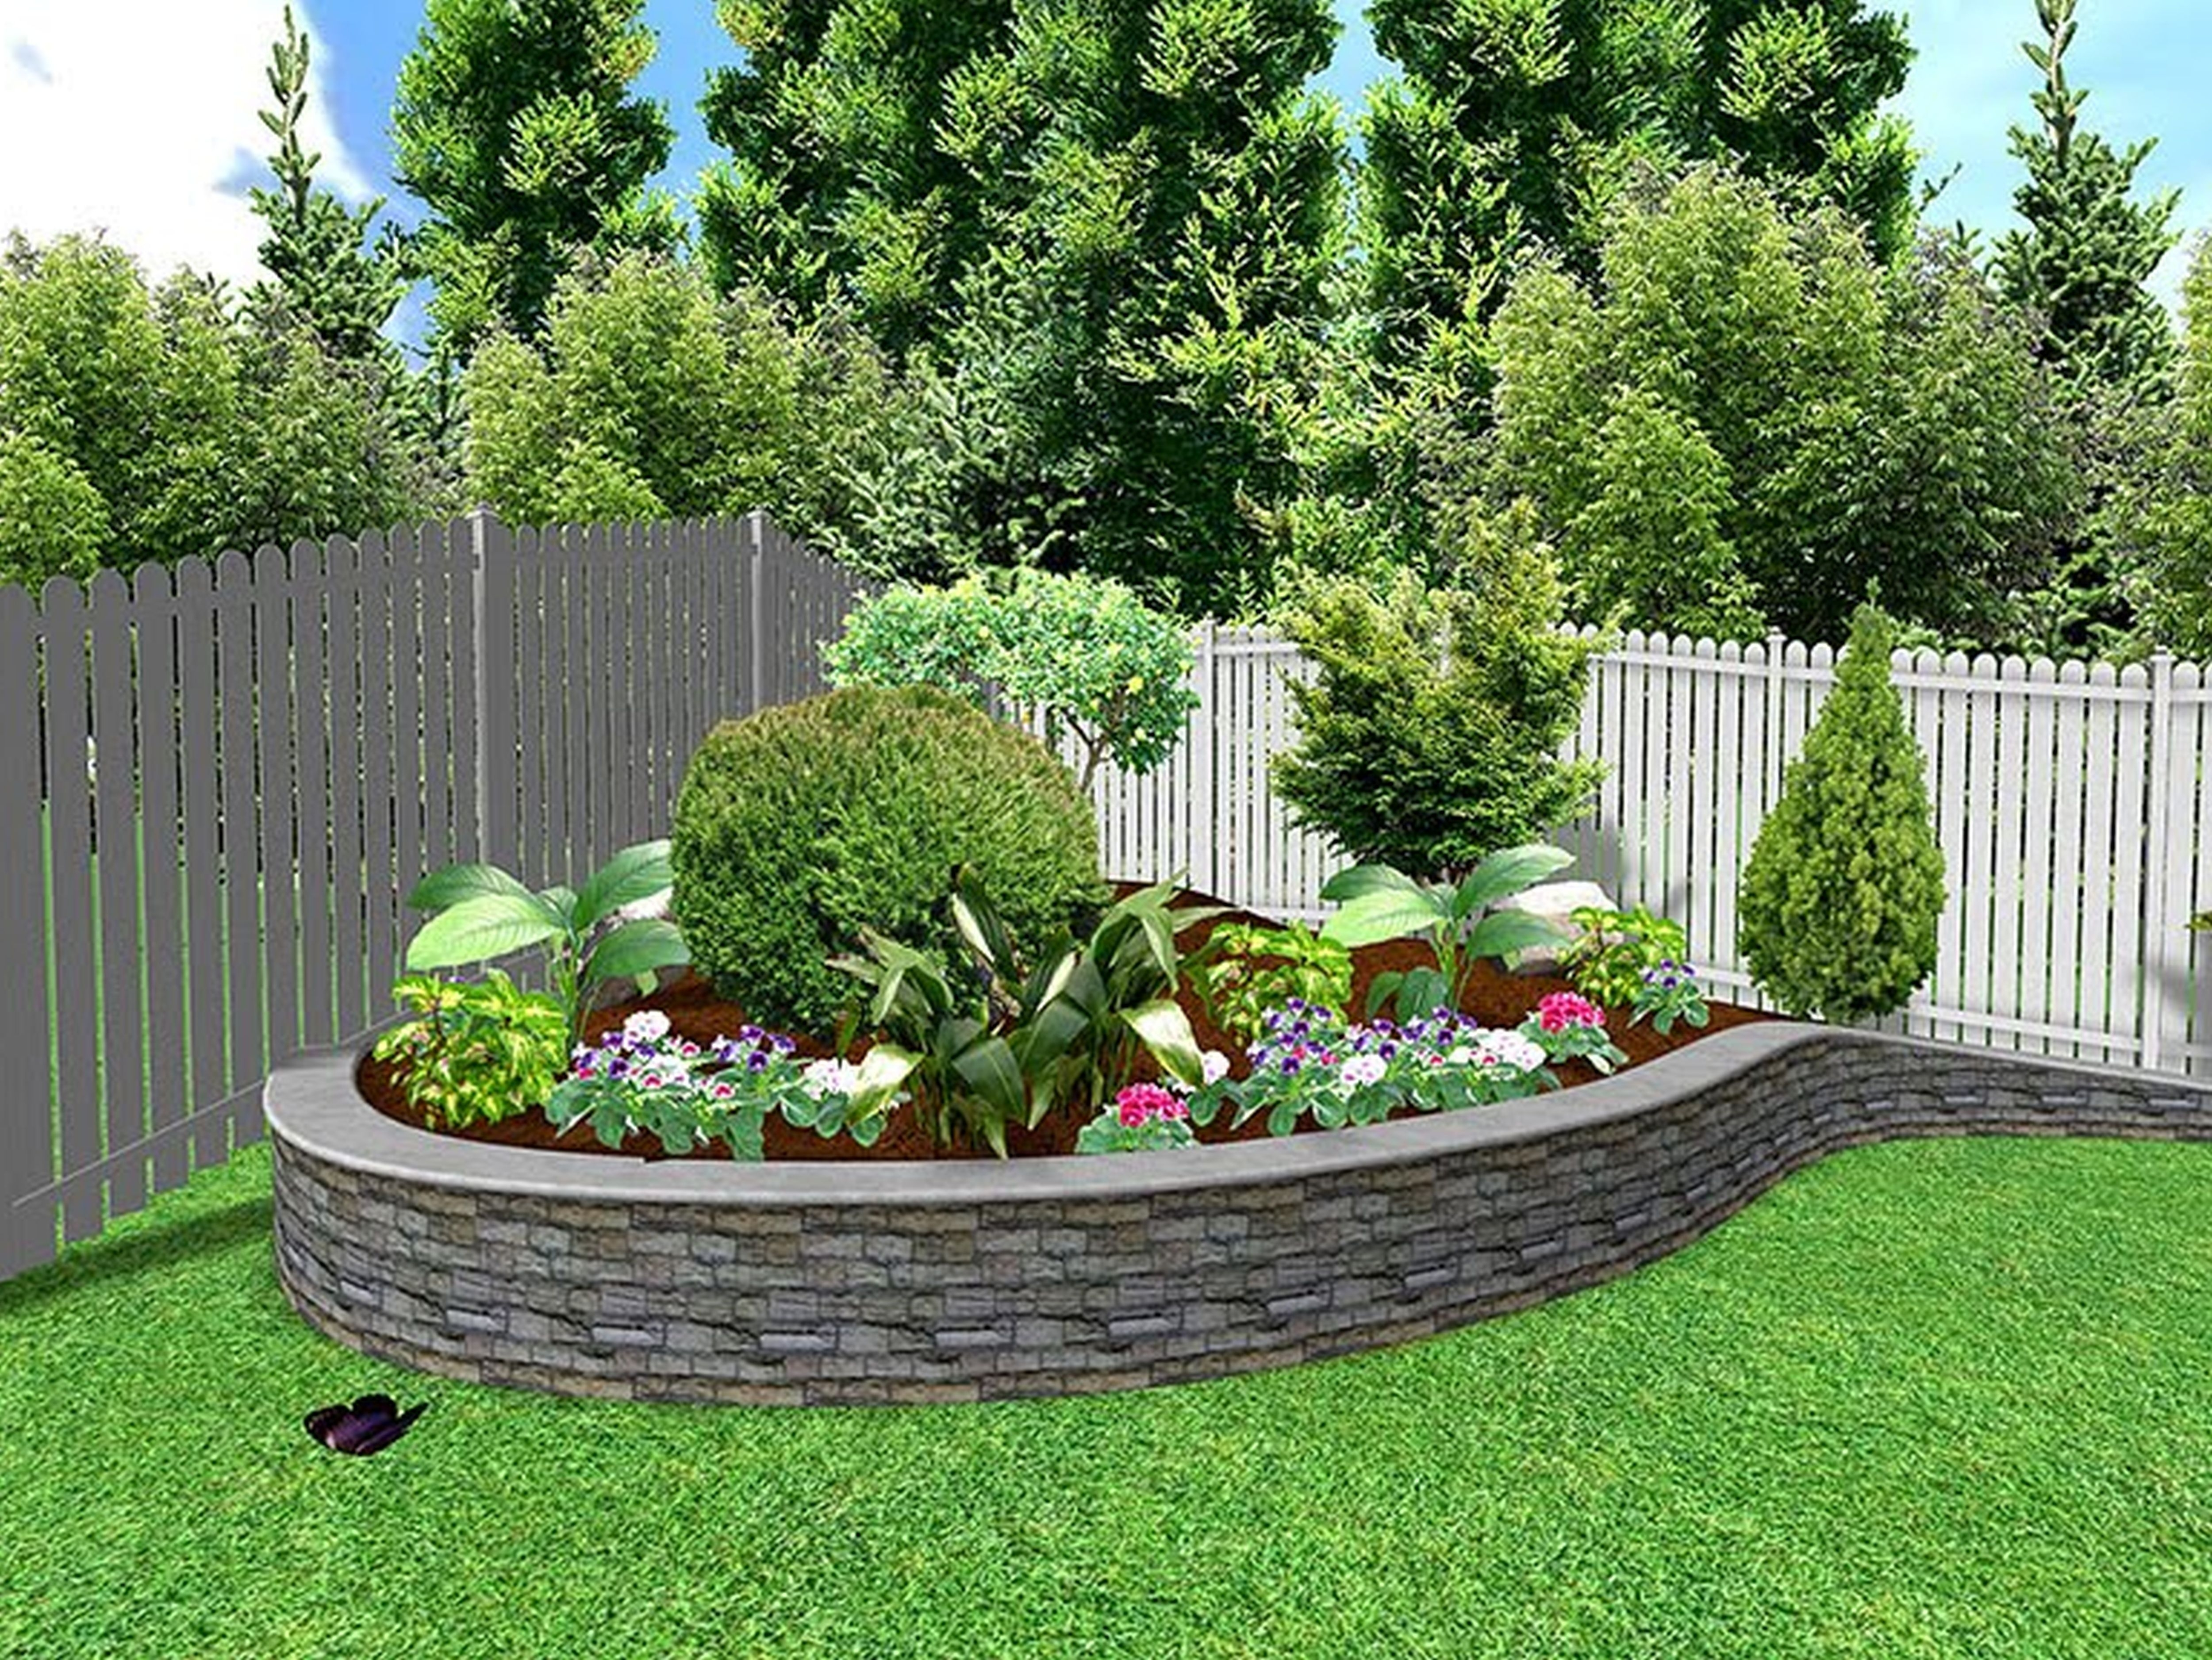 simple landscape ideas best and simple landscape ideas for your in easy NRBGWMJ